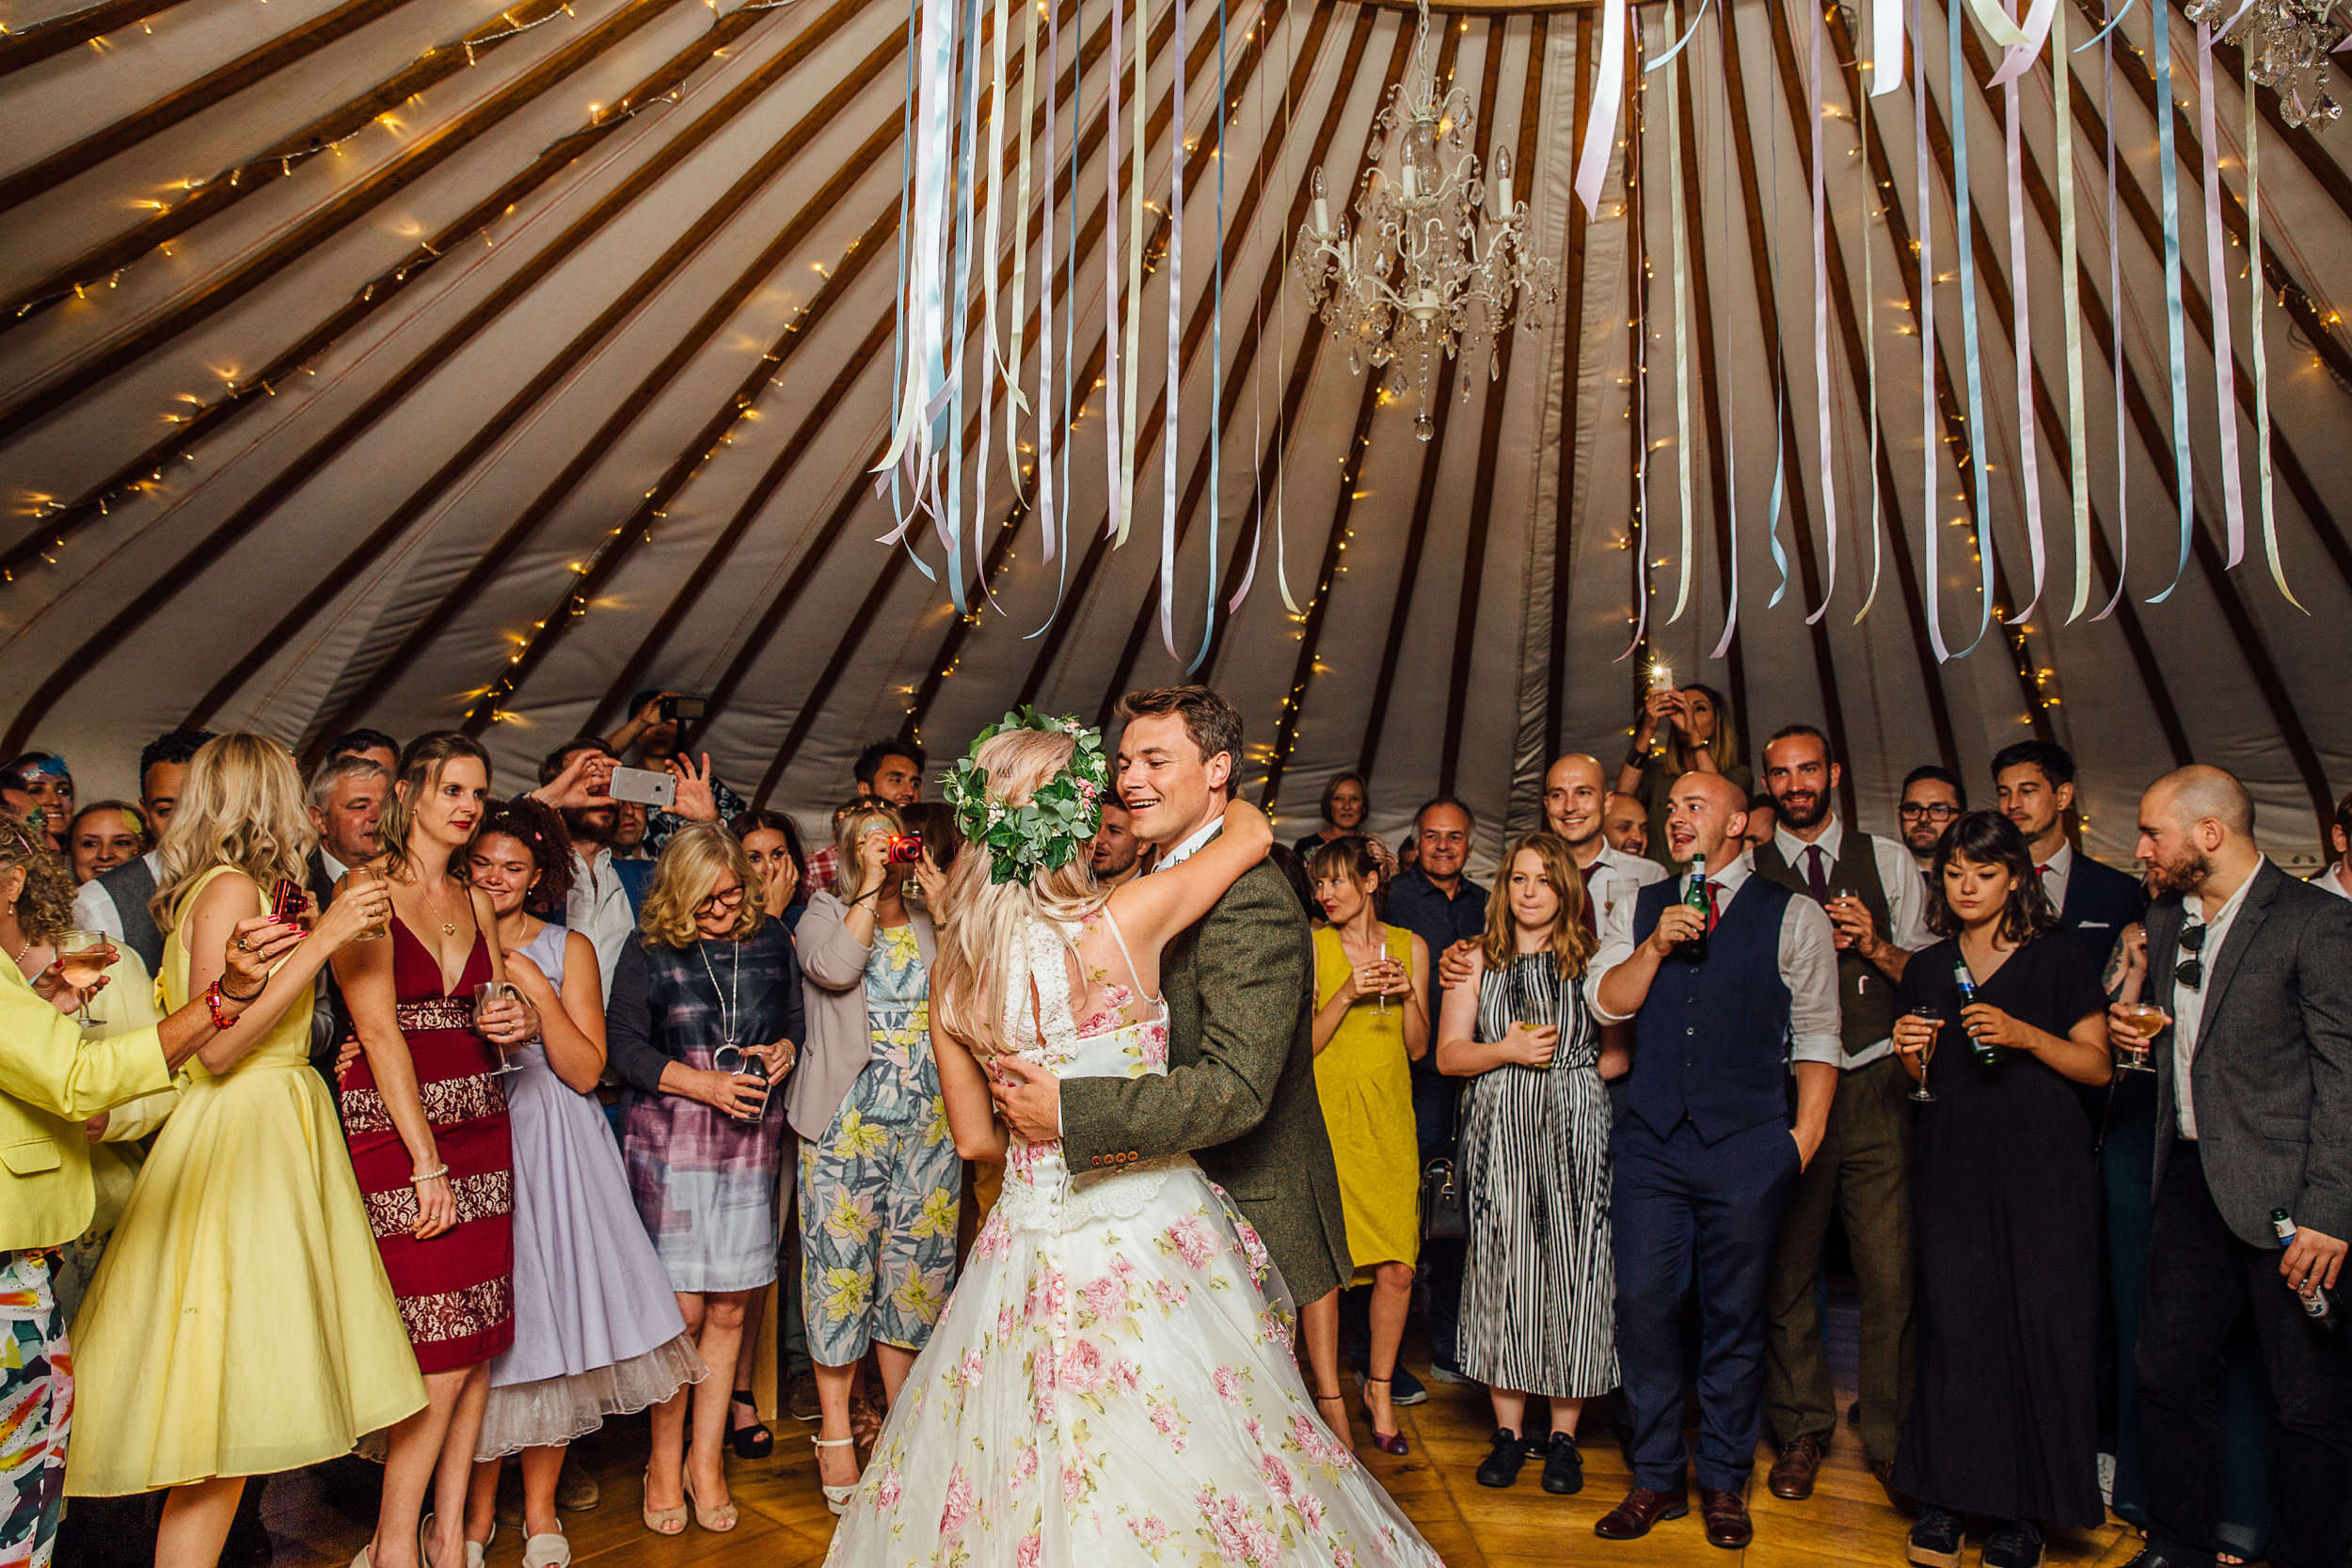 Festival wedding alternative first dance song ideas